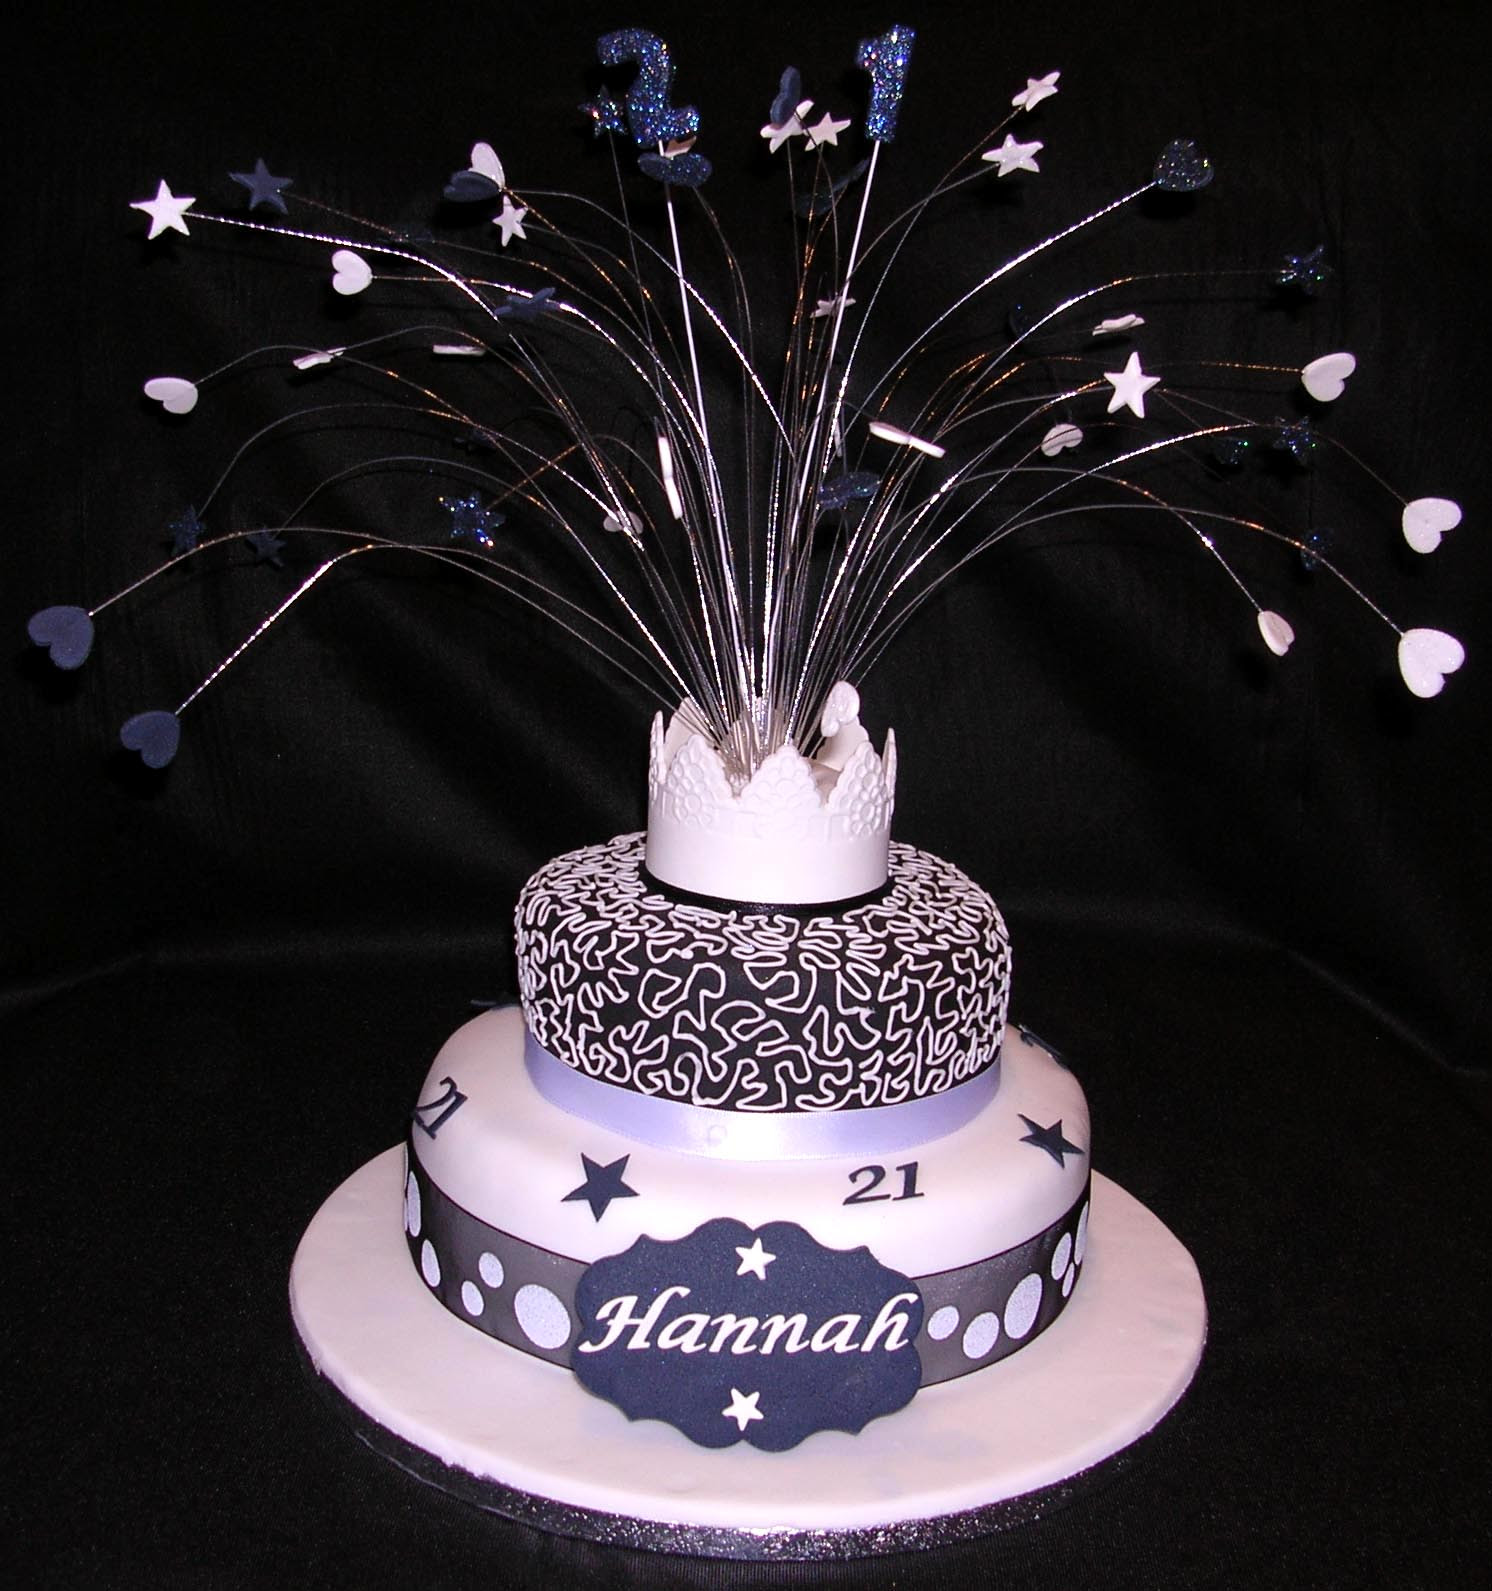 Special Cakes Designs 50th Birthday Cakes Women